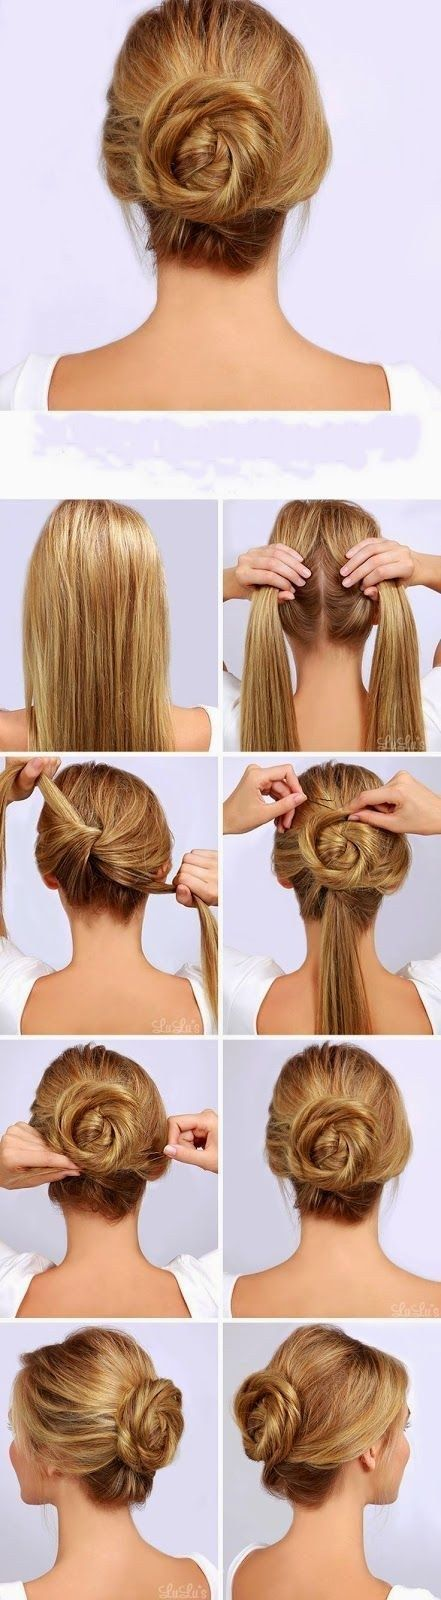 """First, how about this cinnamon """"bun""""? 